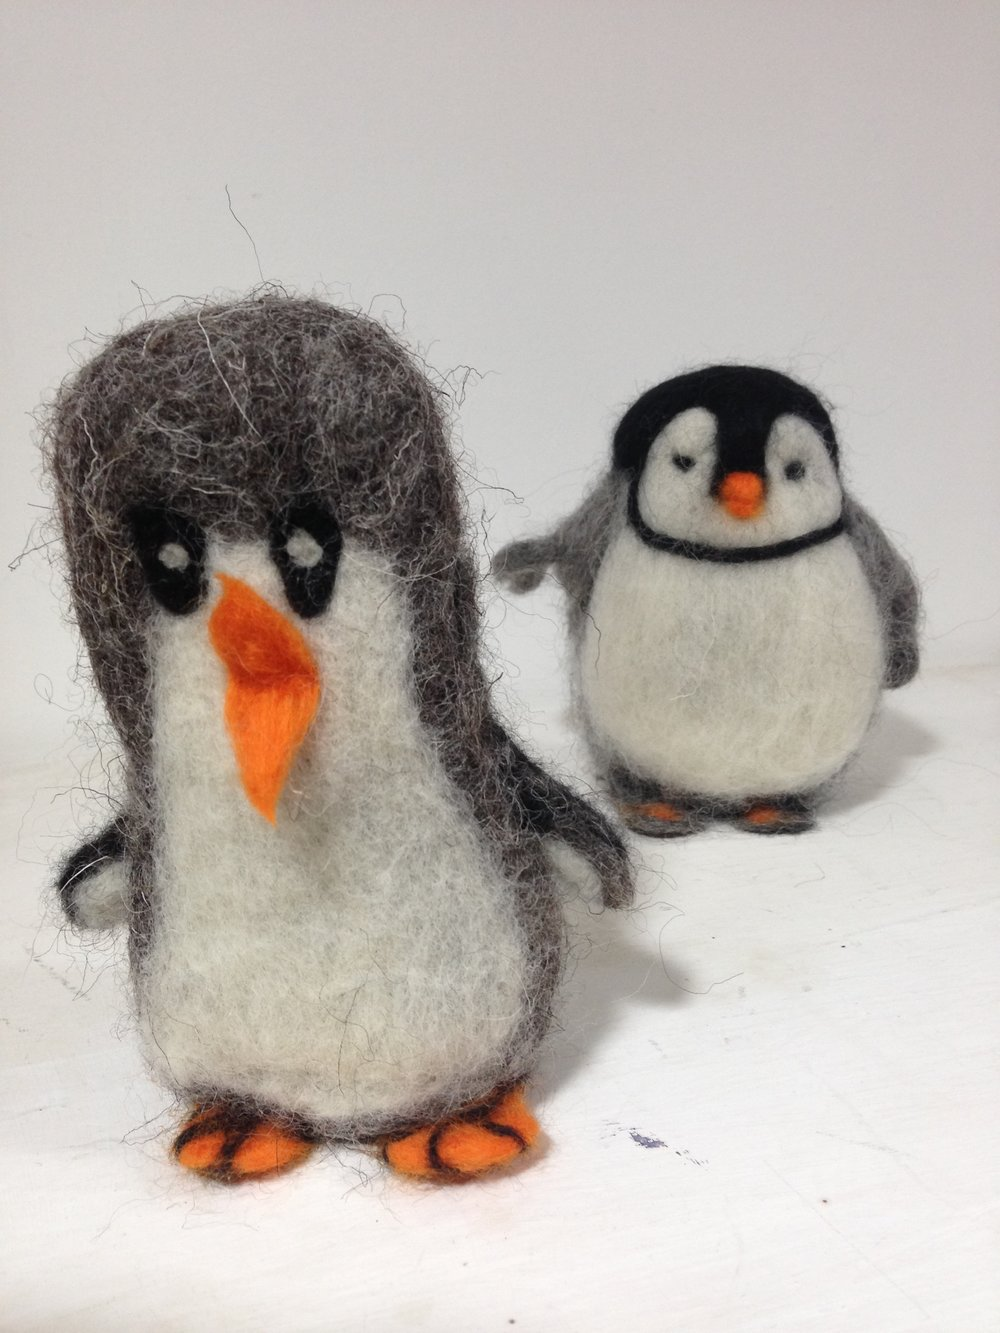 Needle Felt Friends  dates to follow or please contact